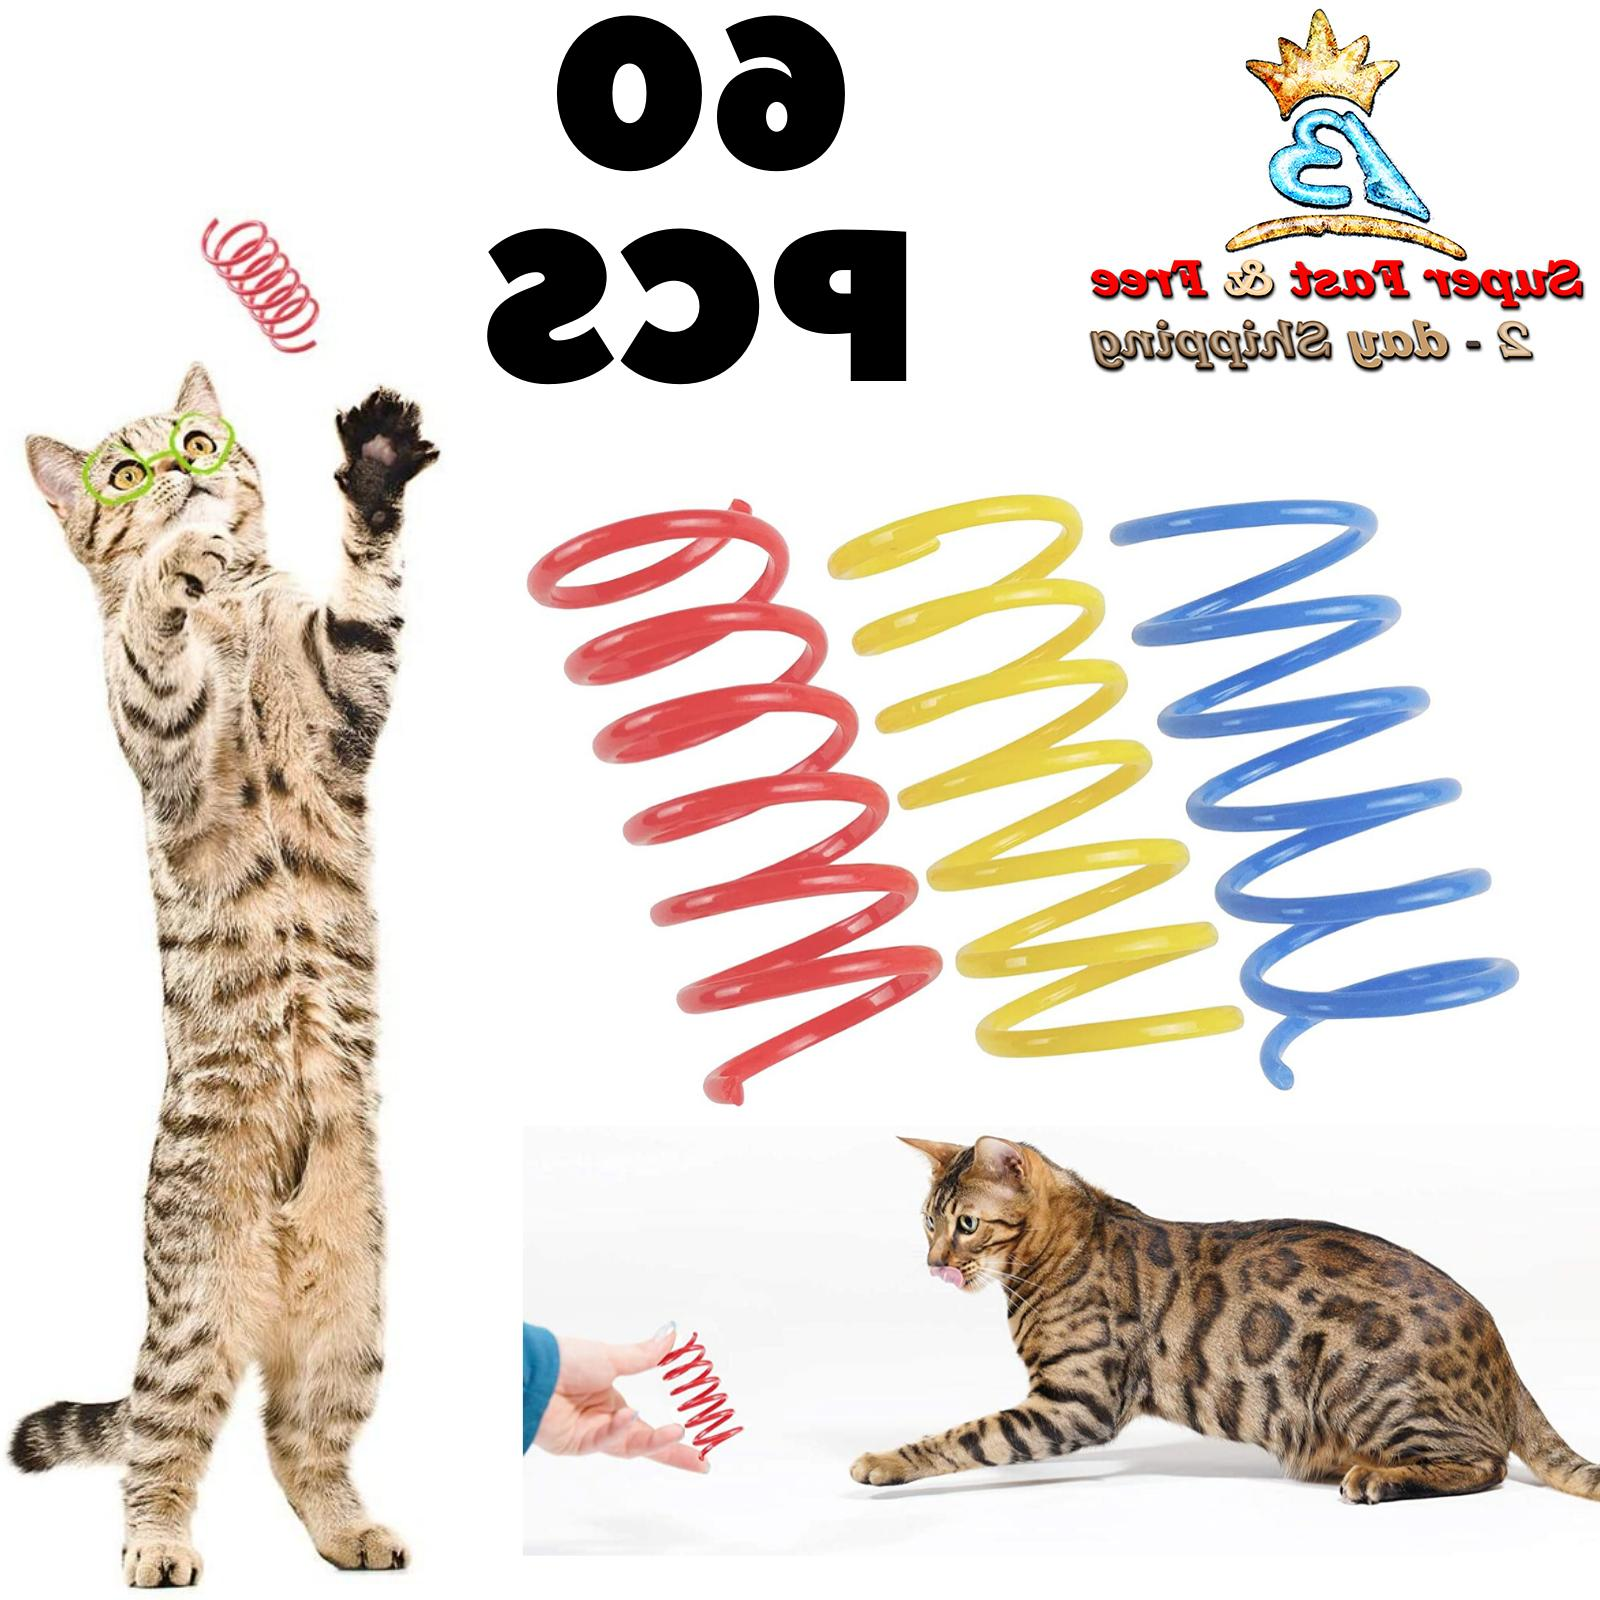 Plastic Springs Cat Interactive Toys 60 Pack For Swatting Hu